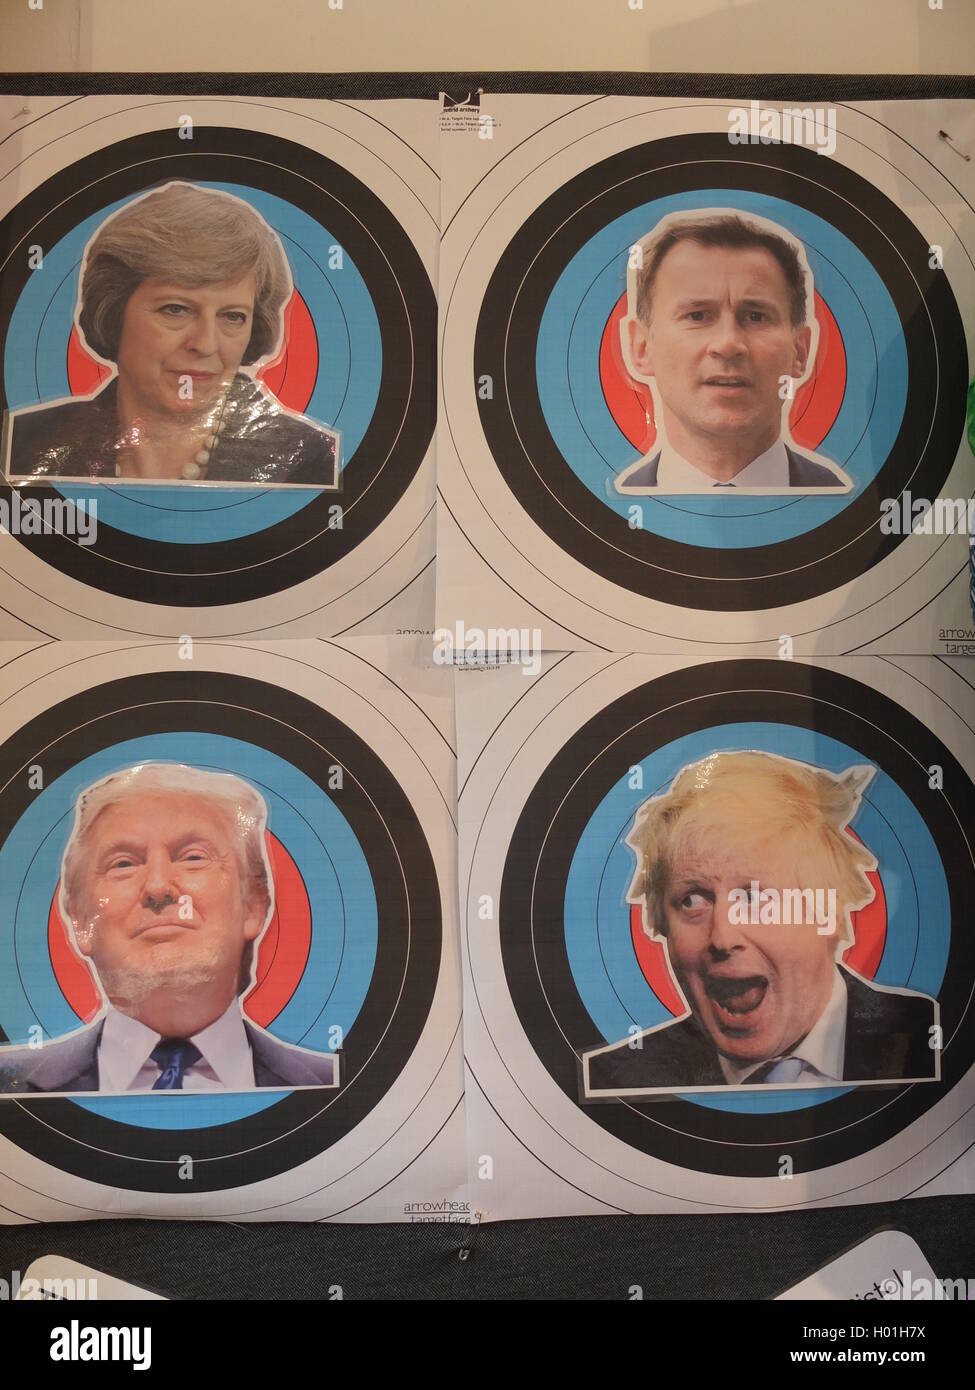 A Sheffield shop invites customers to try out ping pong ball crossbows on targets of unpopular politicians - Stock Image